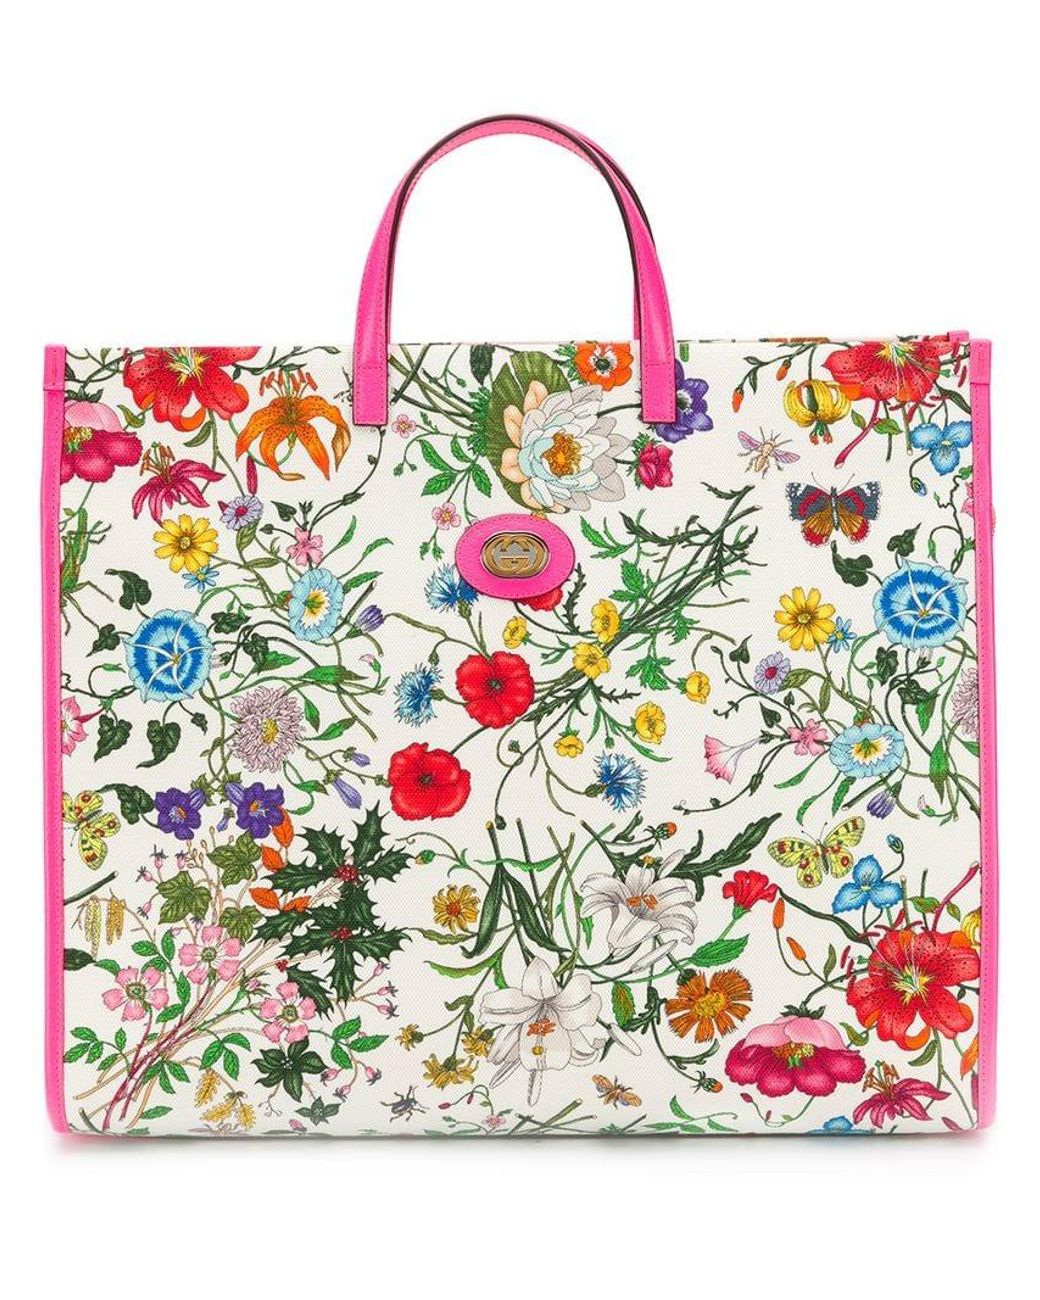 7275a7f7780 Gucci Floral Print Tote Bag in White - Lyst